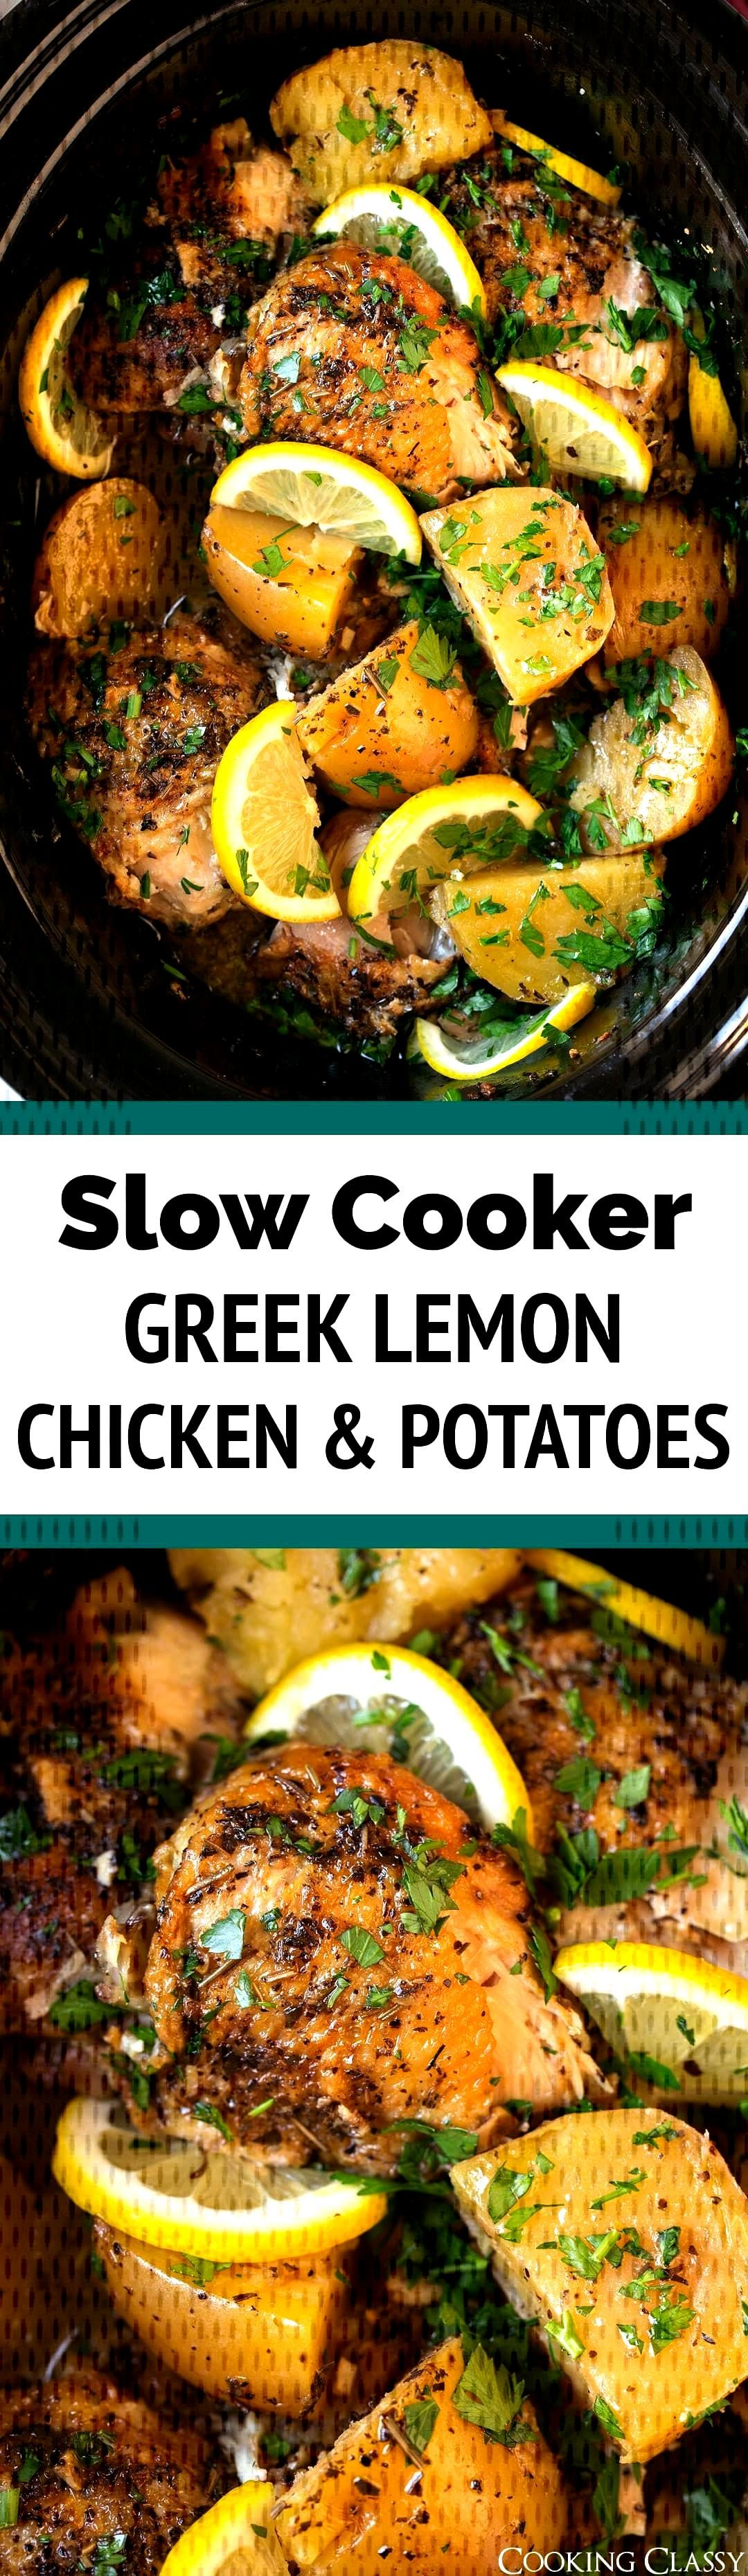 Slow Cooker Greek Lemon Chicken and Potatoes - such a delicious bright flavor and its oh so tender